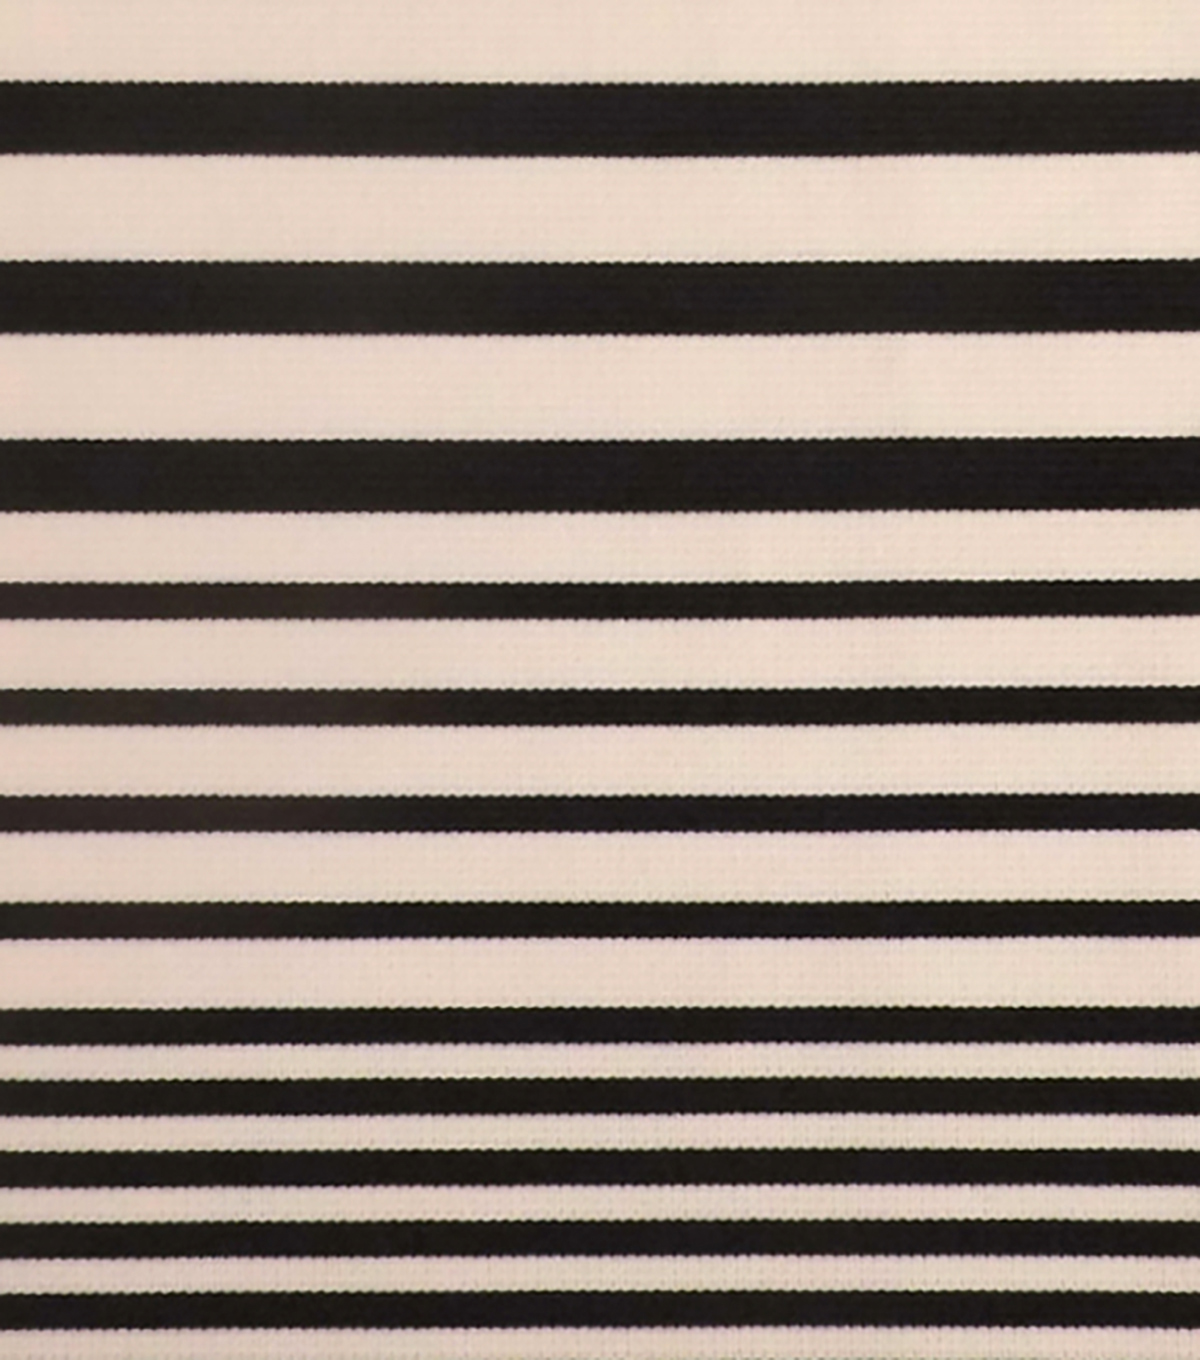 Cape May Textured Knit Fabric -Variegated Stripe